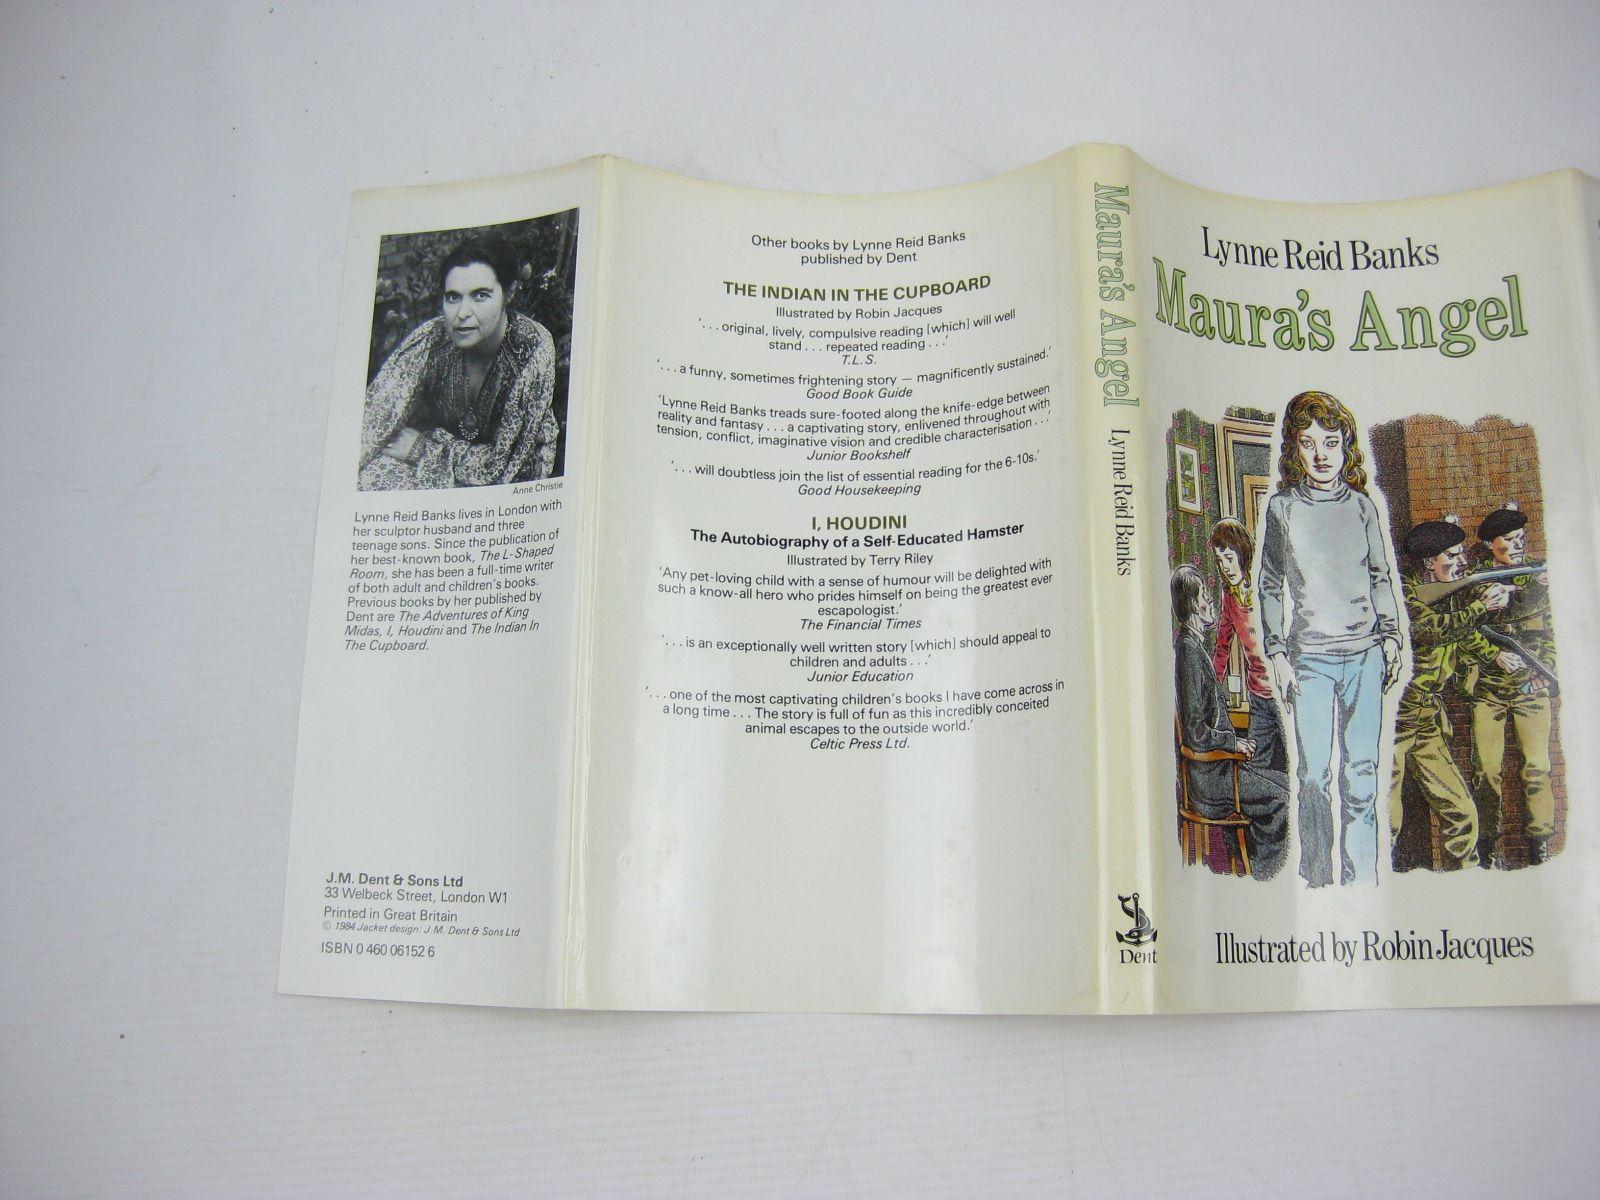 Photo of MAURA'S ANGEL written by Banks, Lynne Reid illustrated by Jacques, Robin published by J.M. Dent & Sons Ltd. (STOCK CODE: 732200)  for sale by Stella & Rose's Books